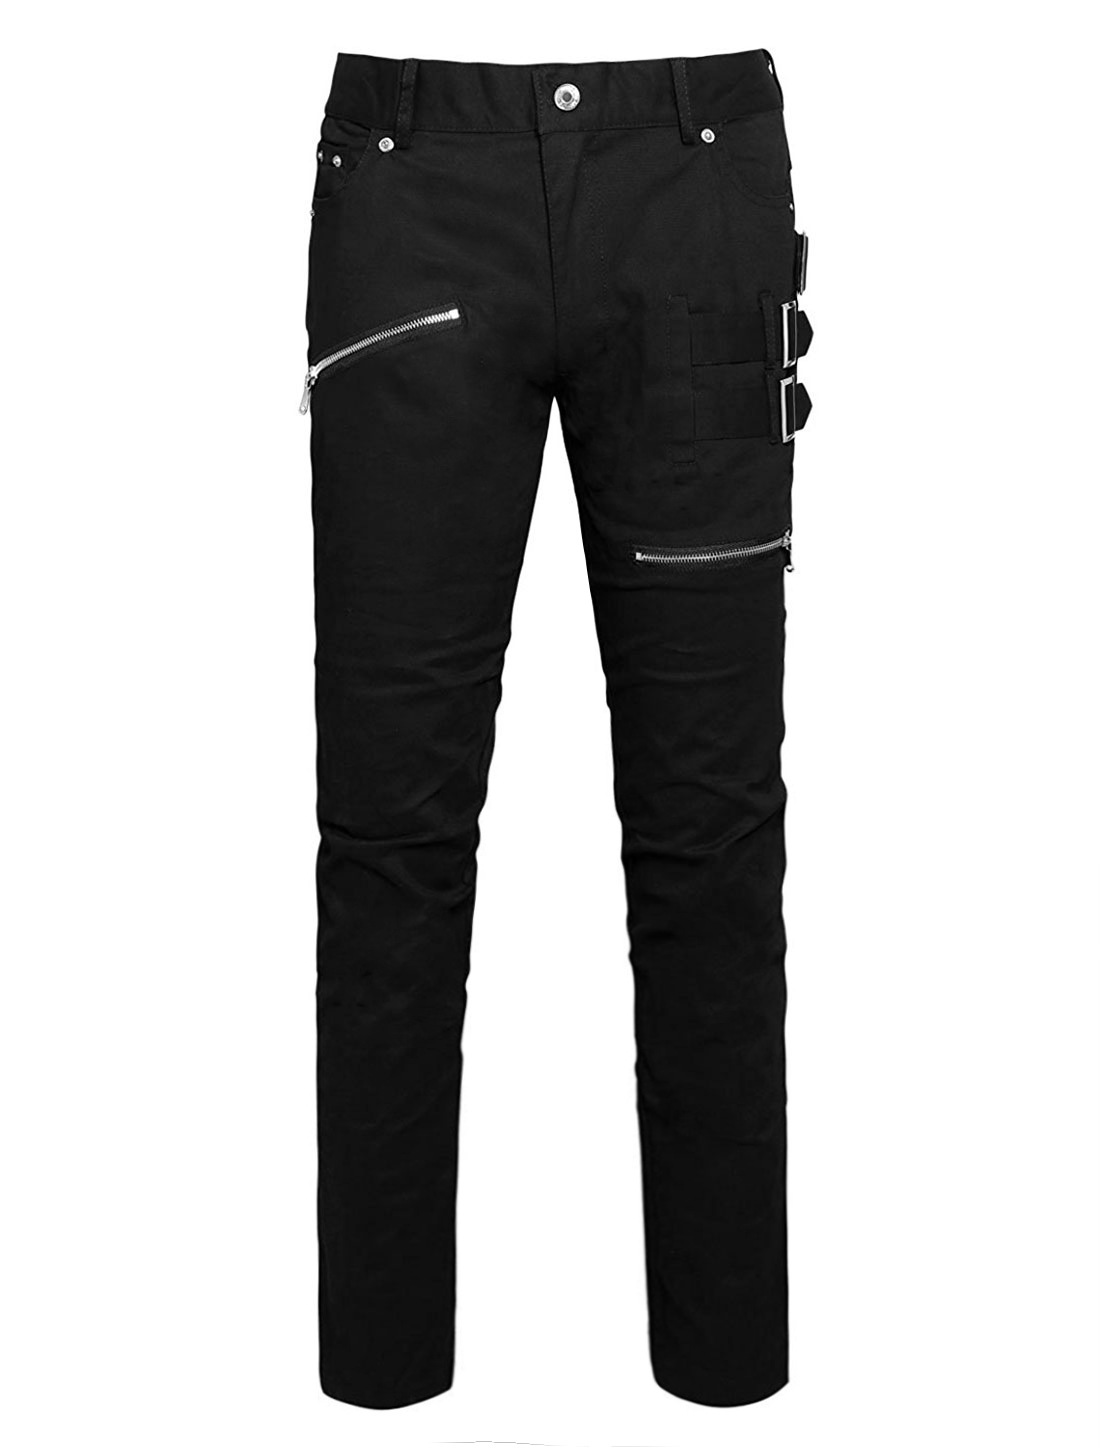 Man Zipper Buckle Embellished Button Closure Leisure Pants Black W32